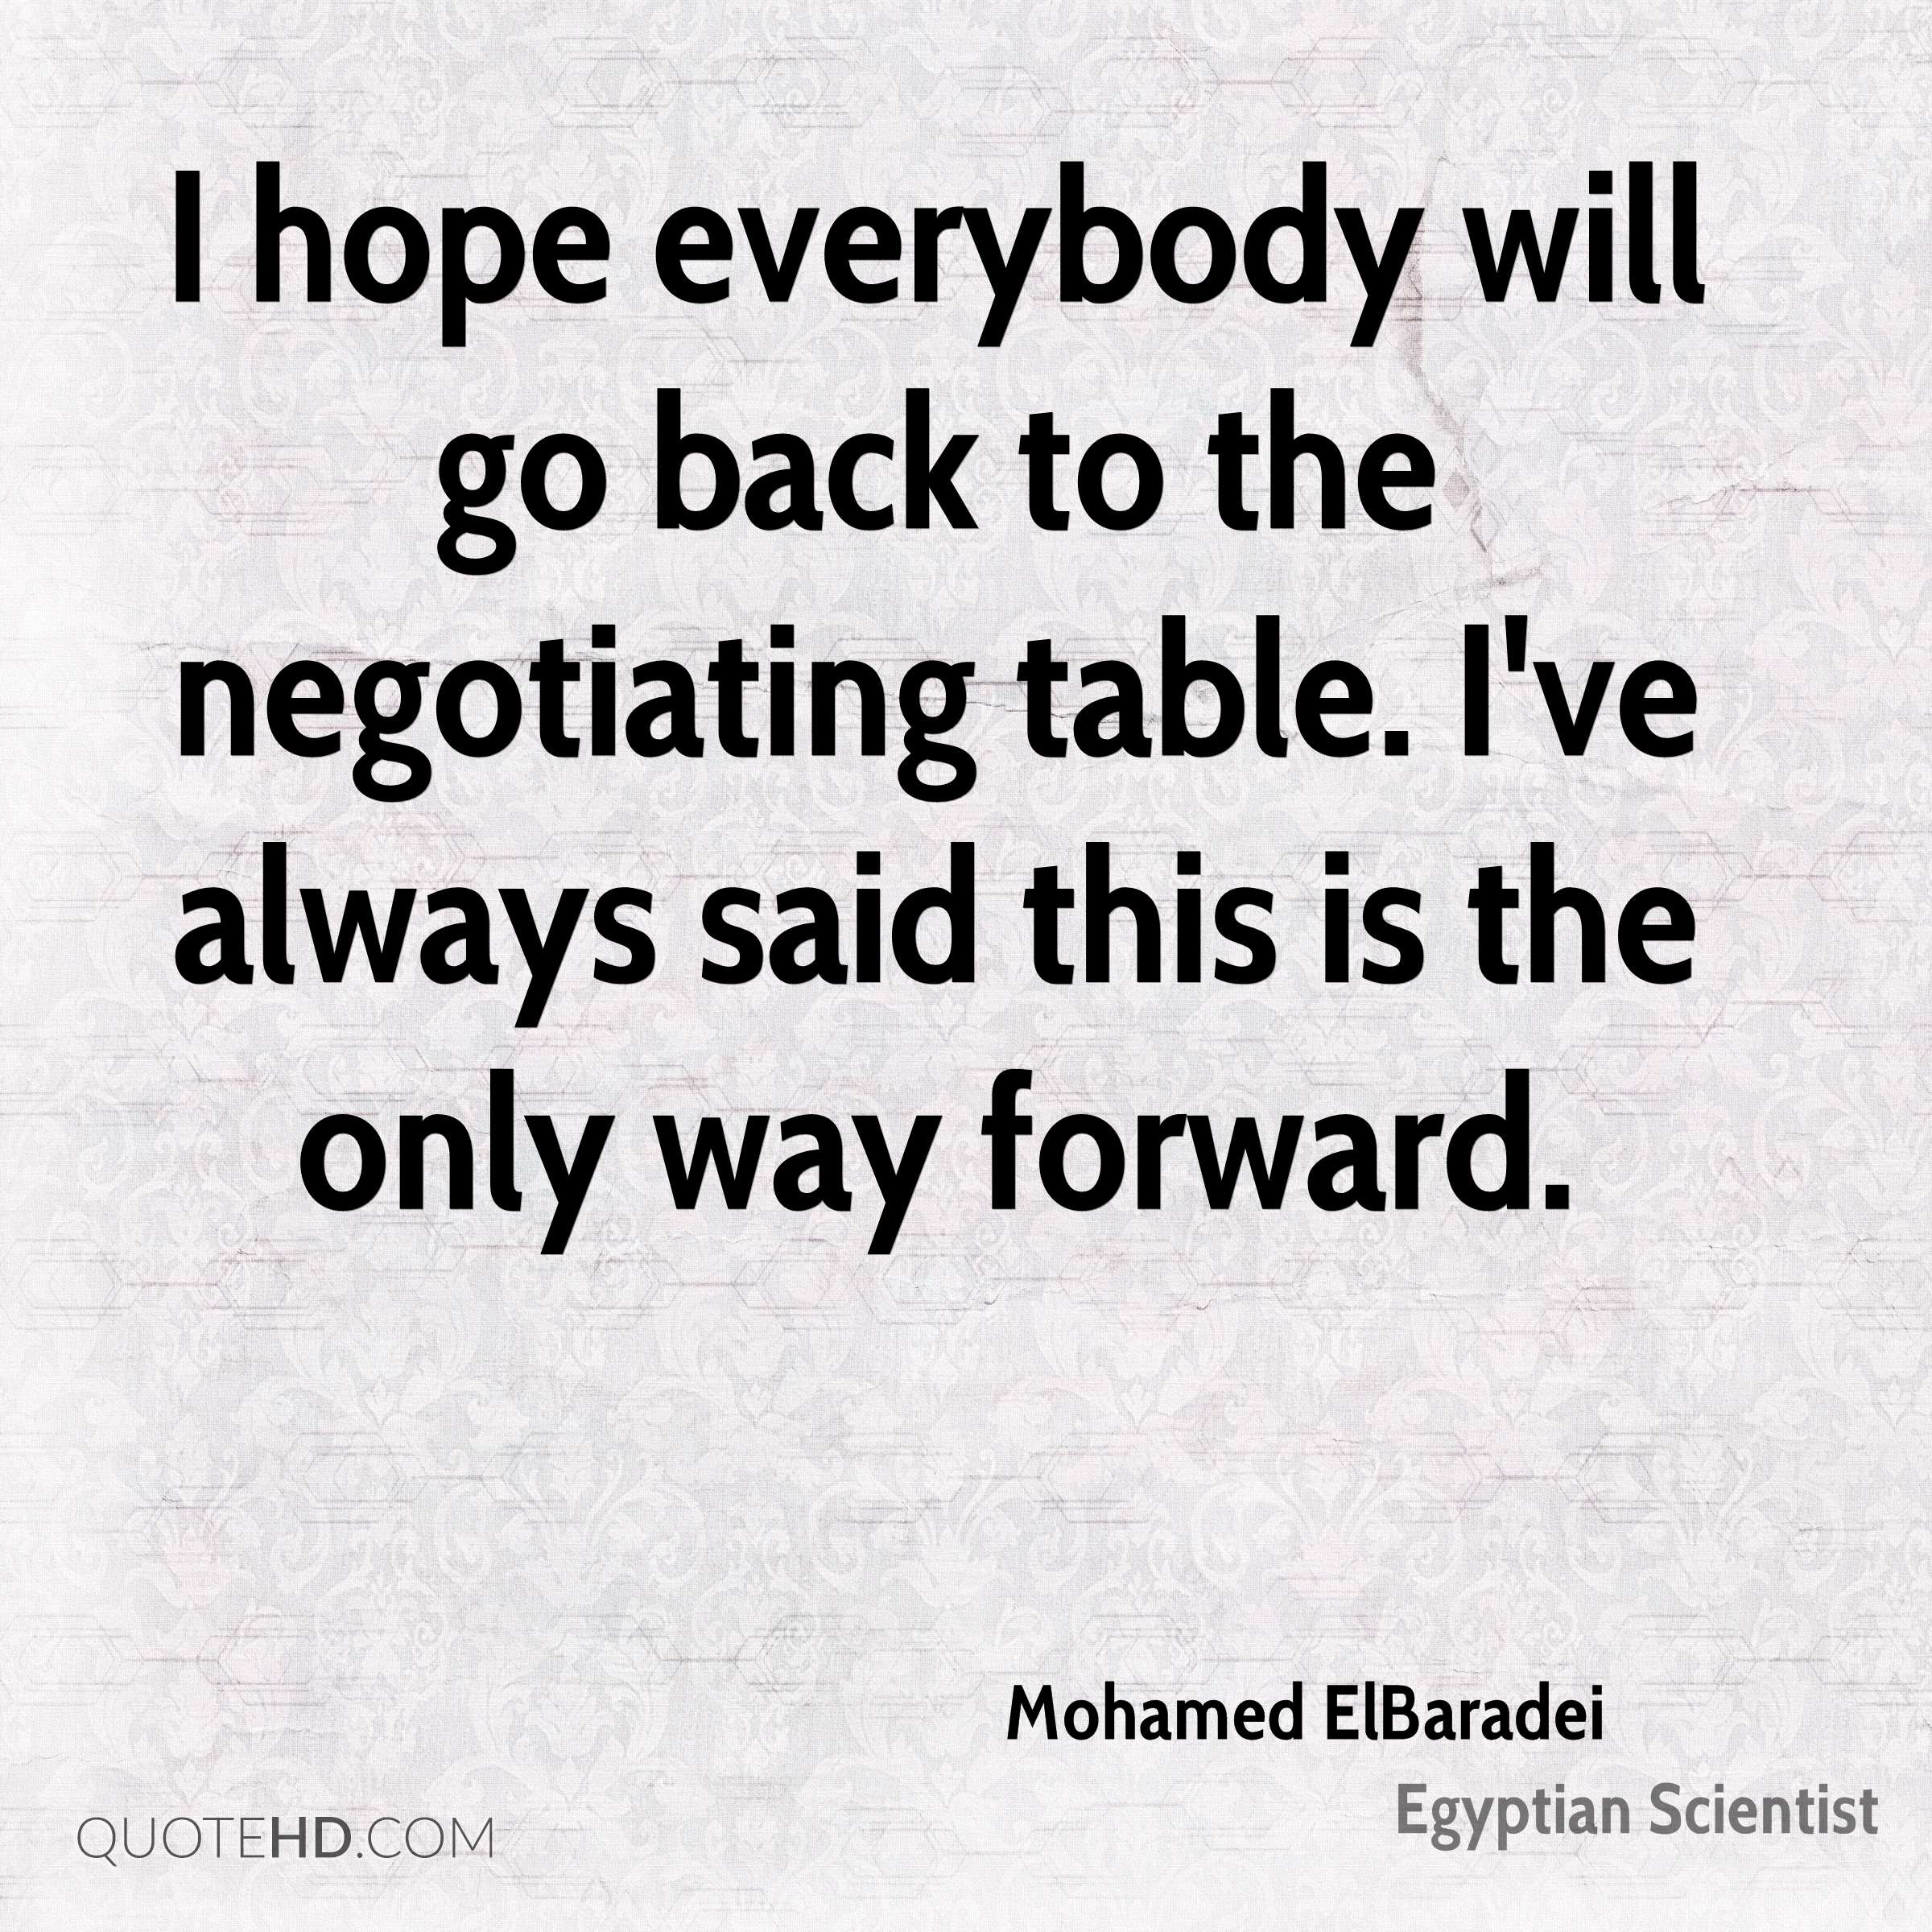 I hope everybody will go back to the negotiating table. I've always said this is the only way forward.